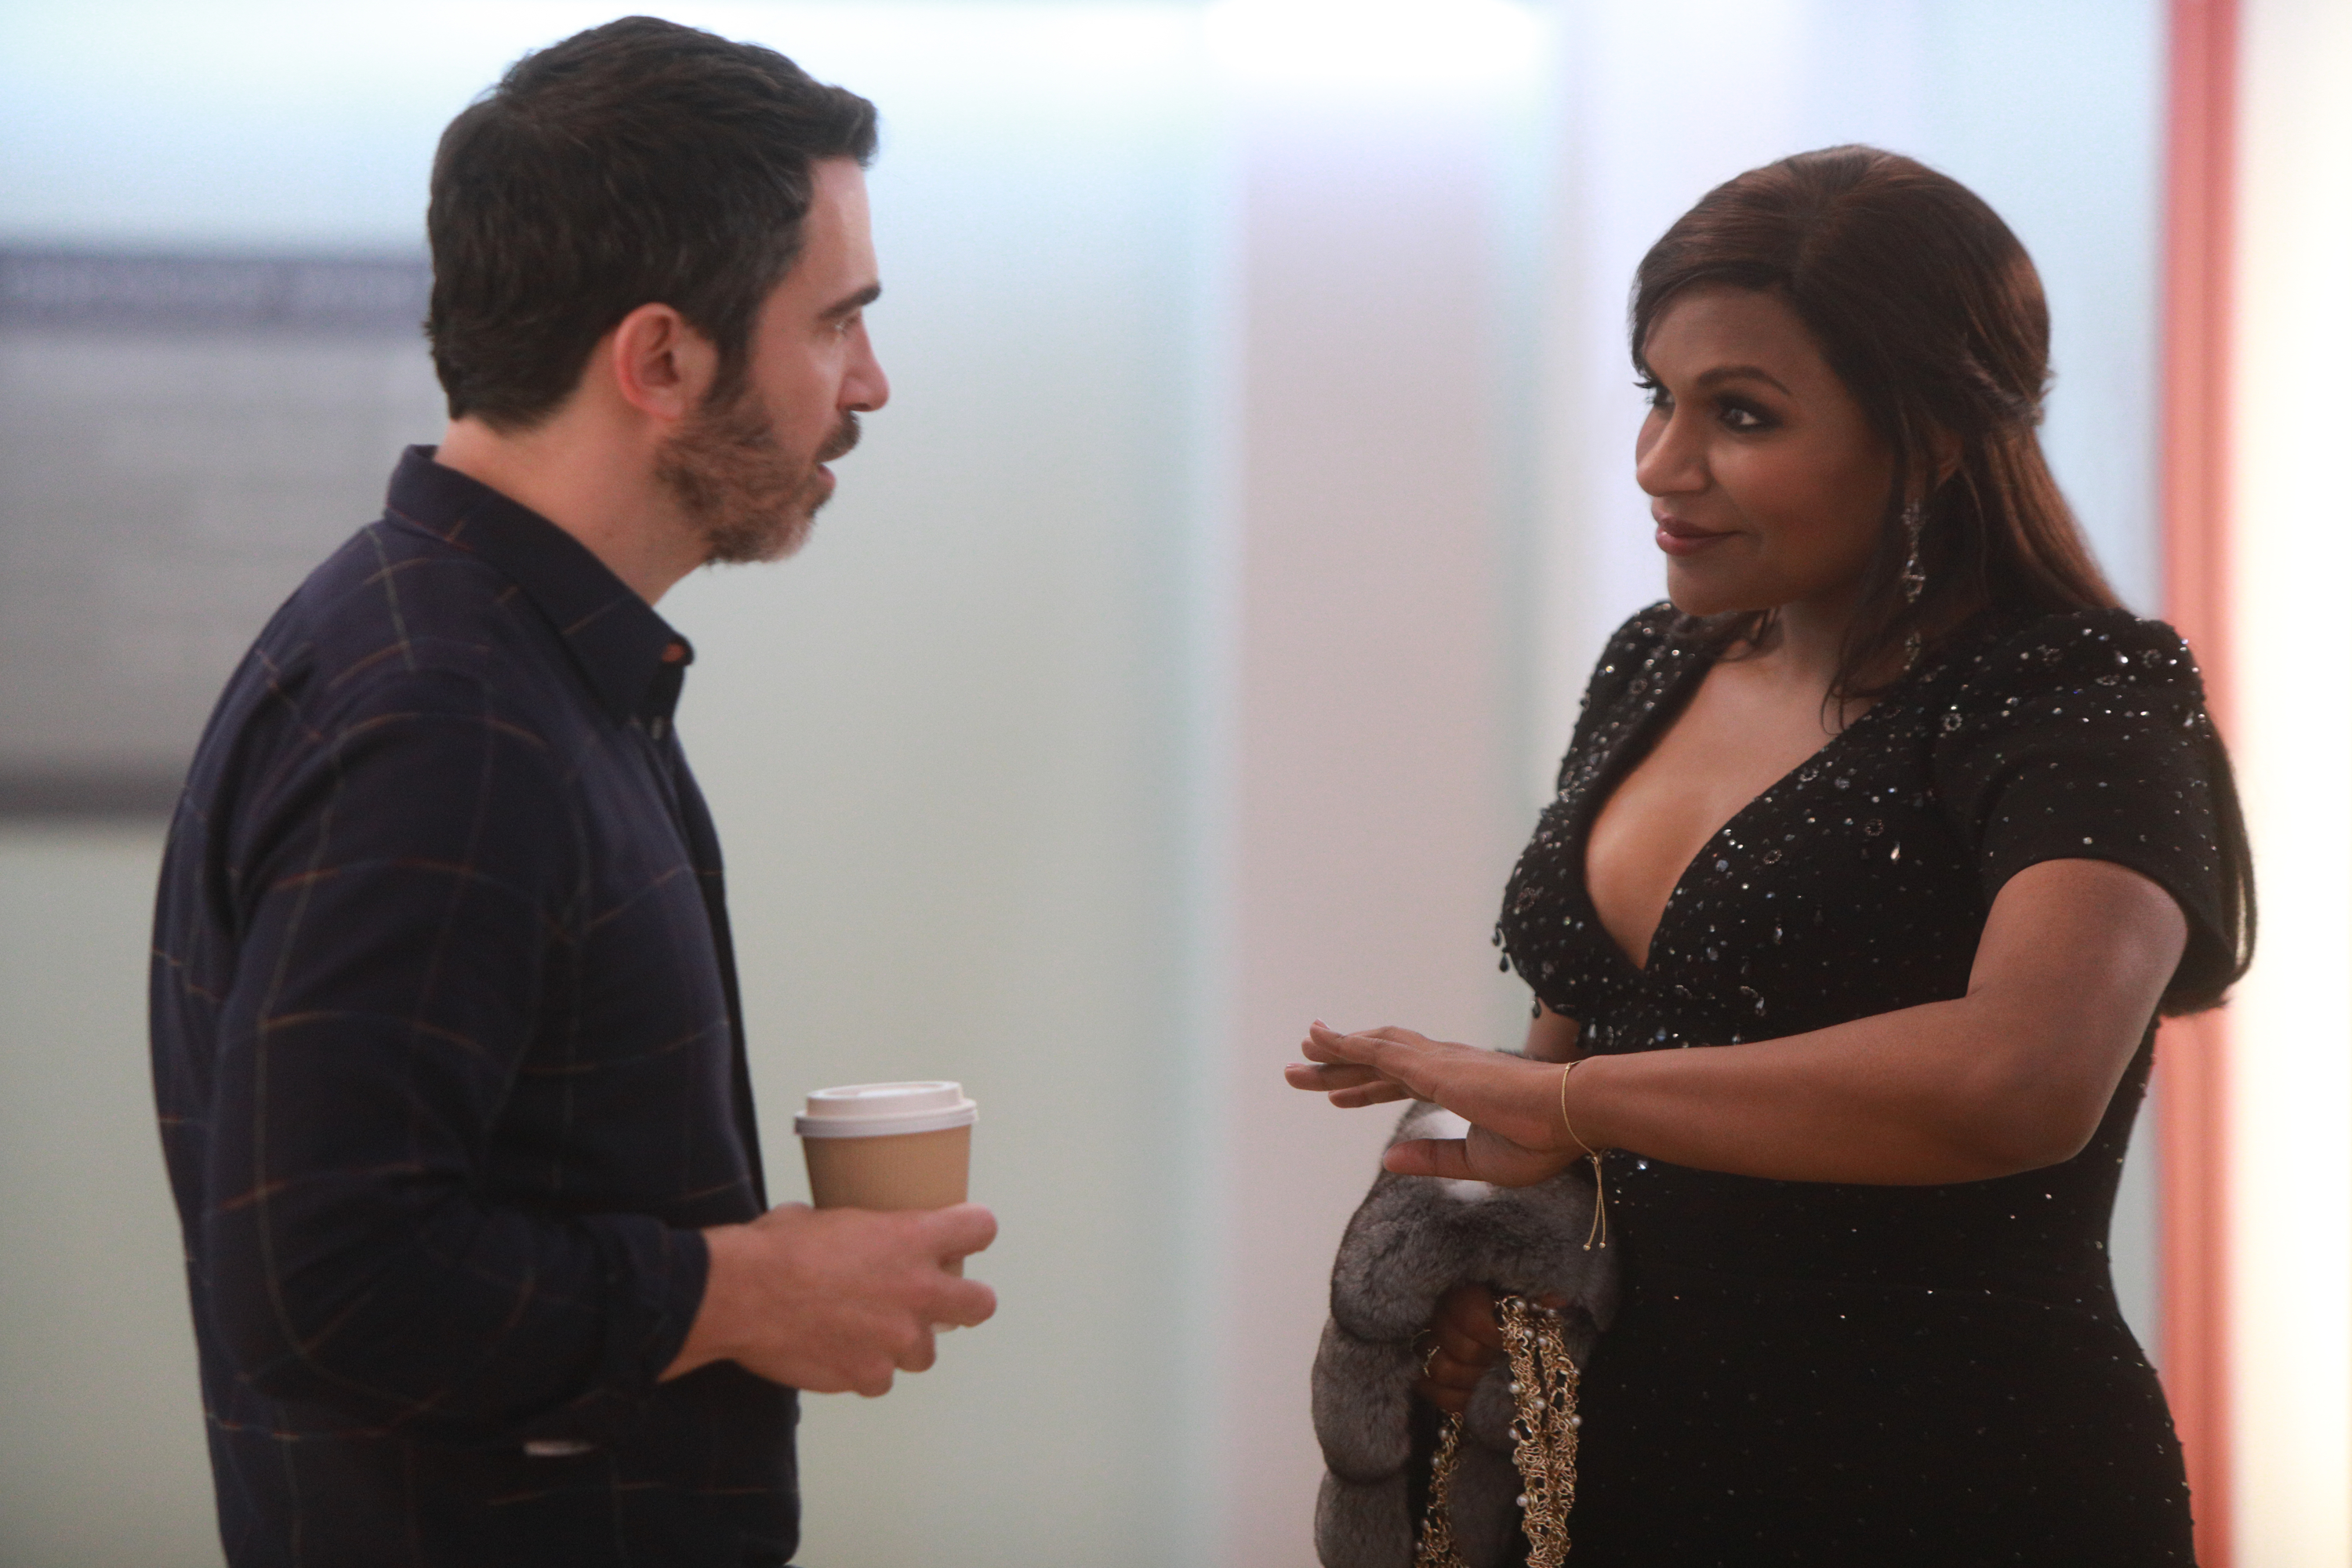 Mindy Kaling in The Mindy Project